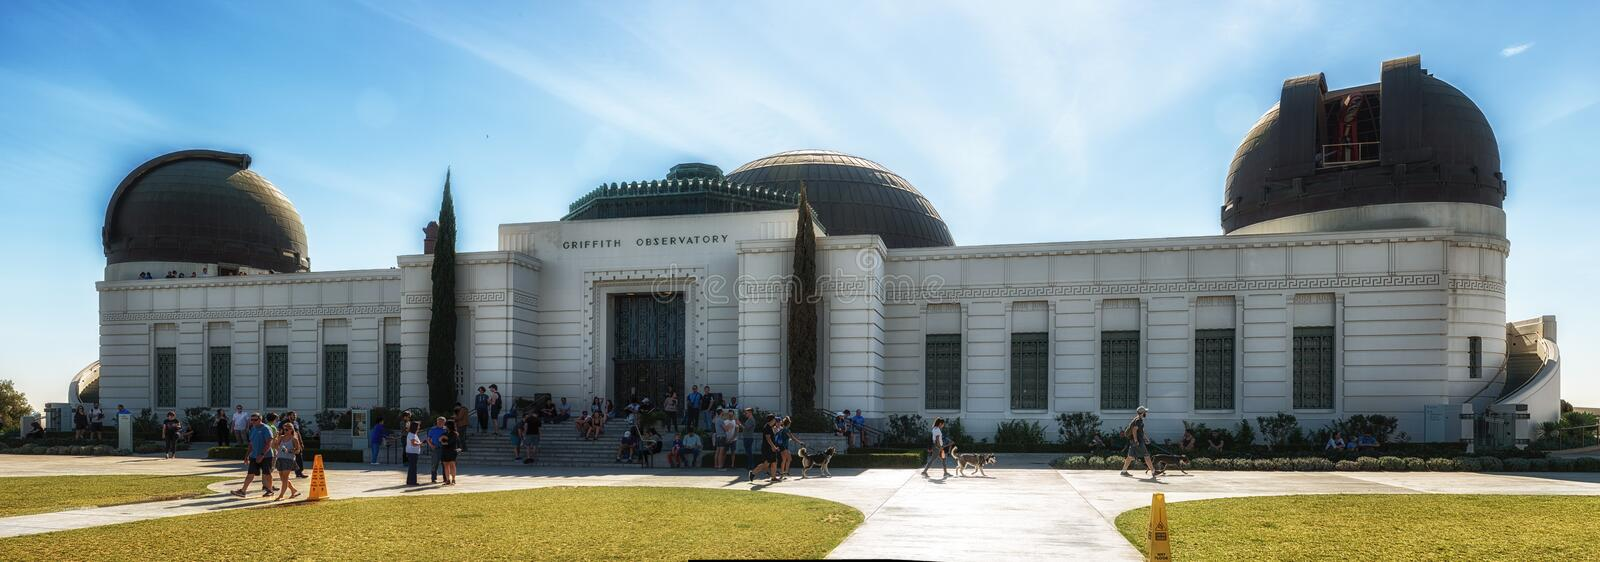 Griffith Observatory Monument degli astronomi a Los Angeles Cali immagine stock